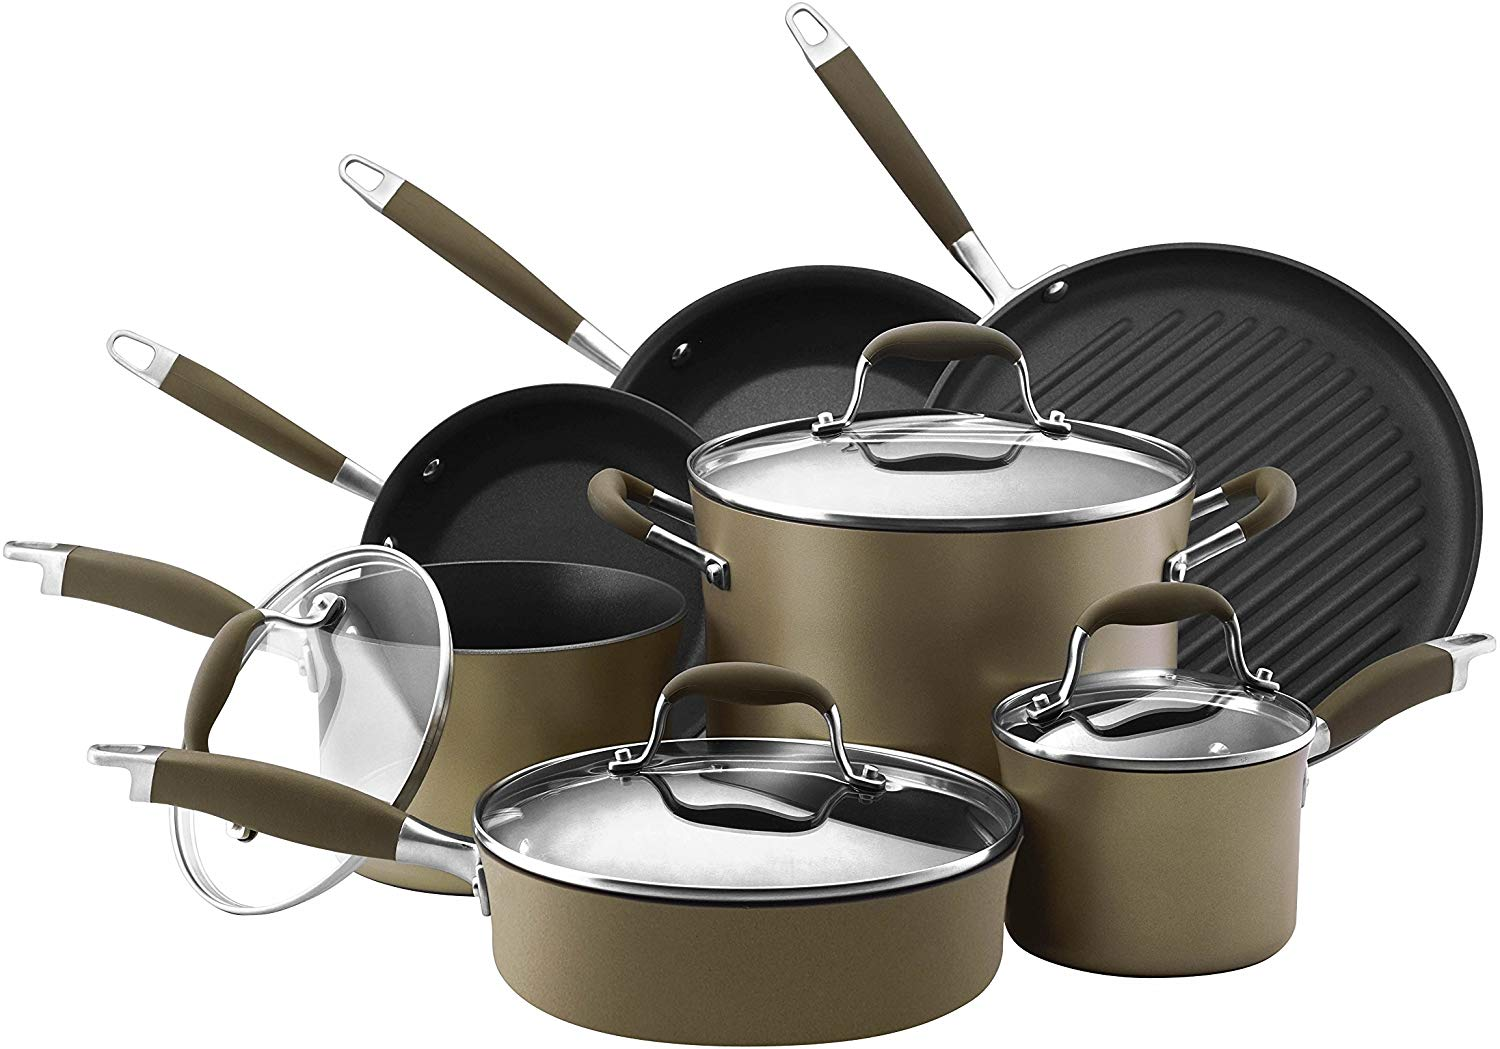 Anolon Advanced Bronze Hard-Anodized Nonstick 11-Piece Cookware Set